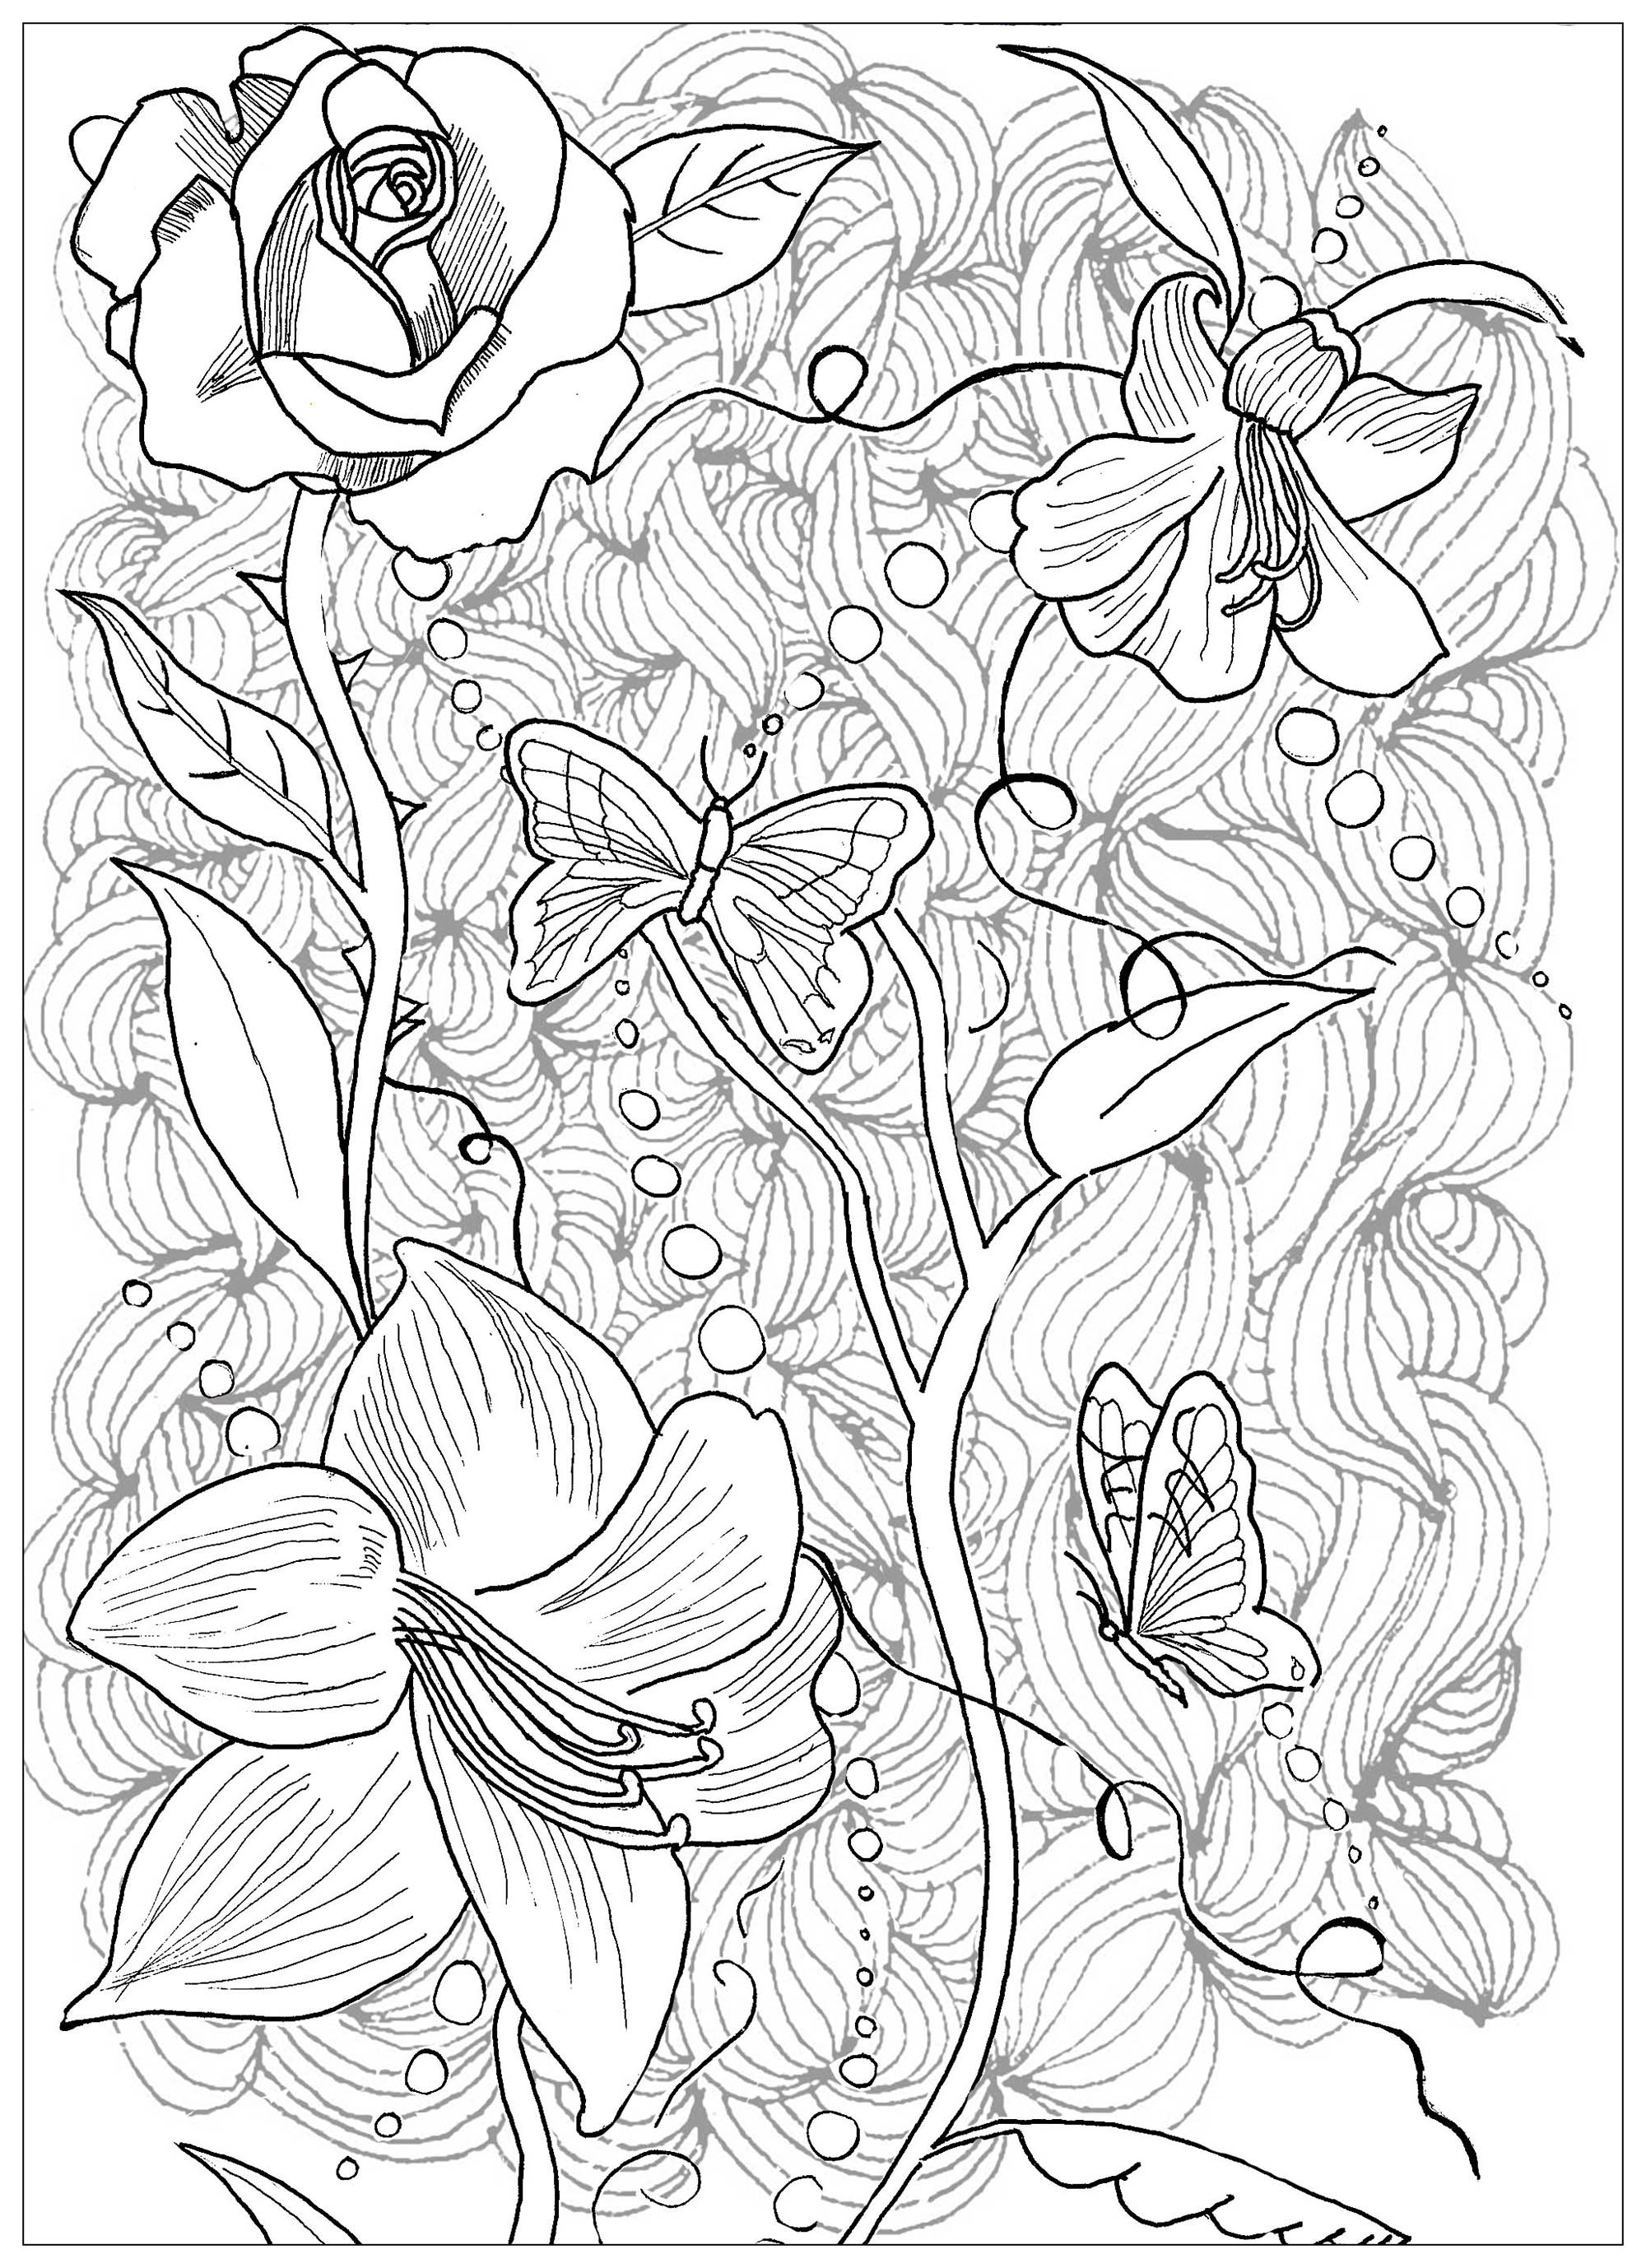 Tattoos - Coloring pages for adults | JustColor